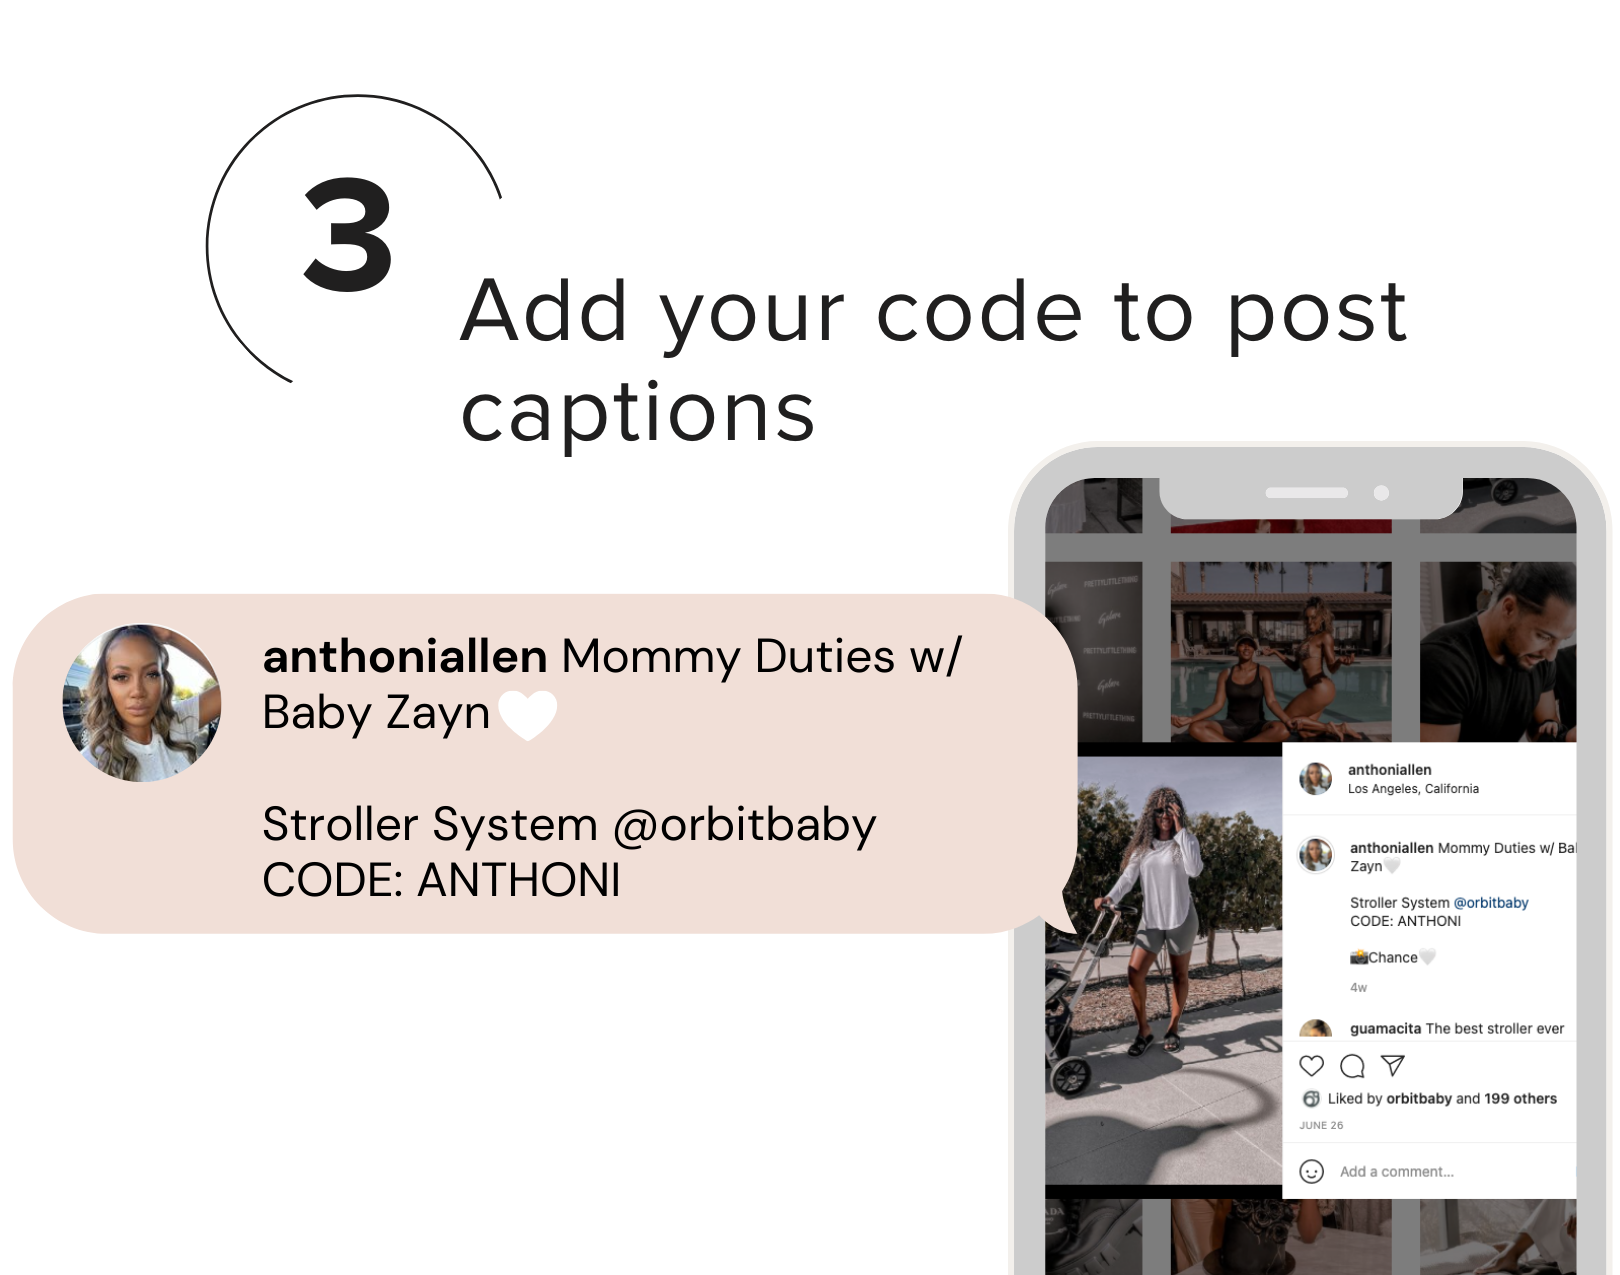 Add your code to post captions